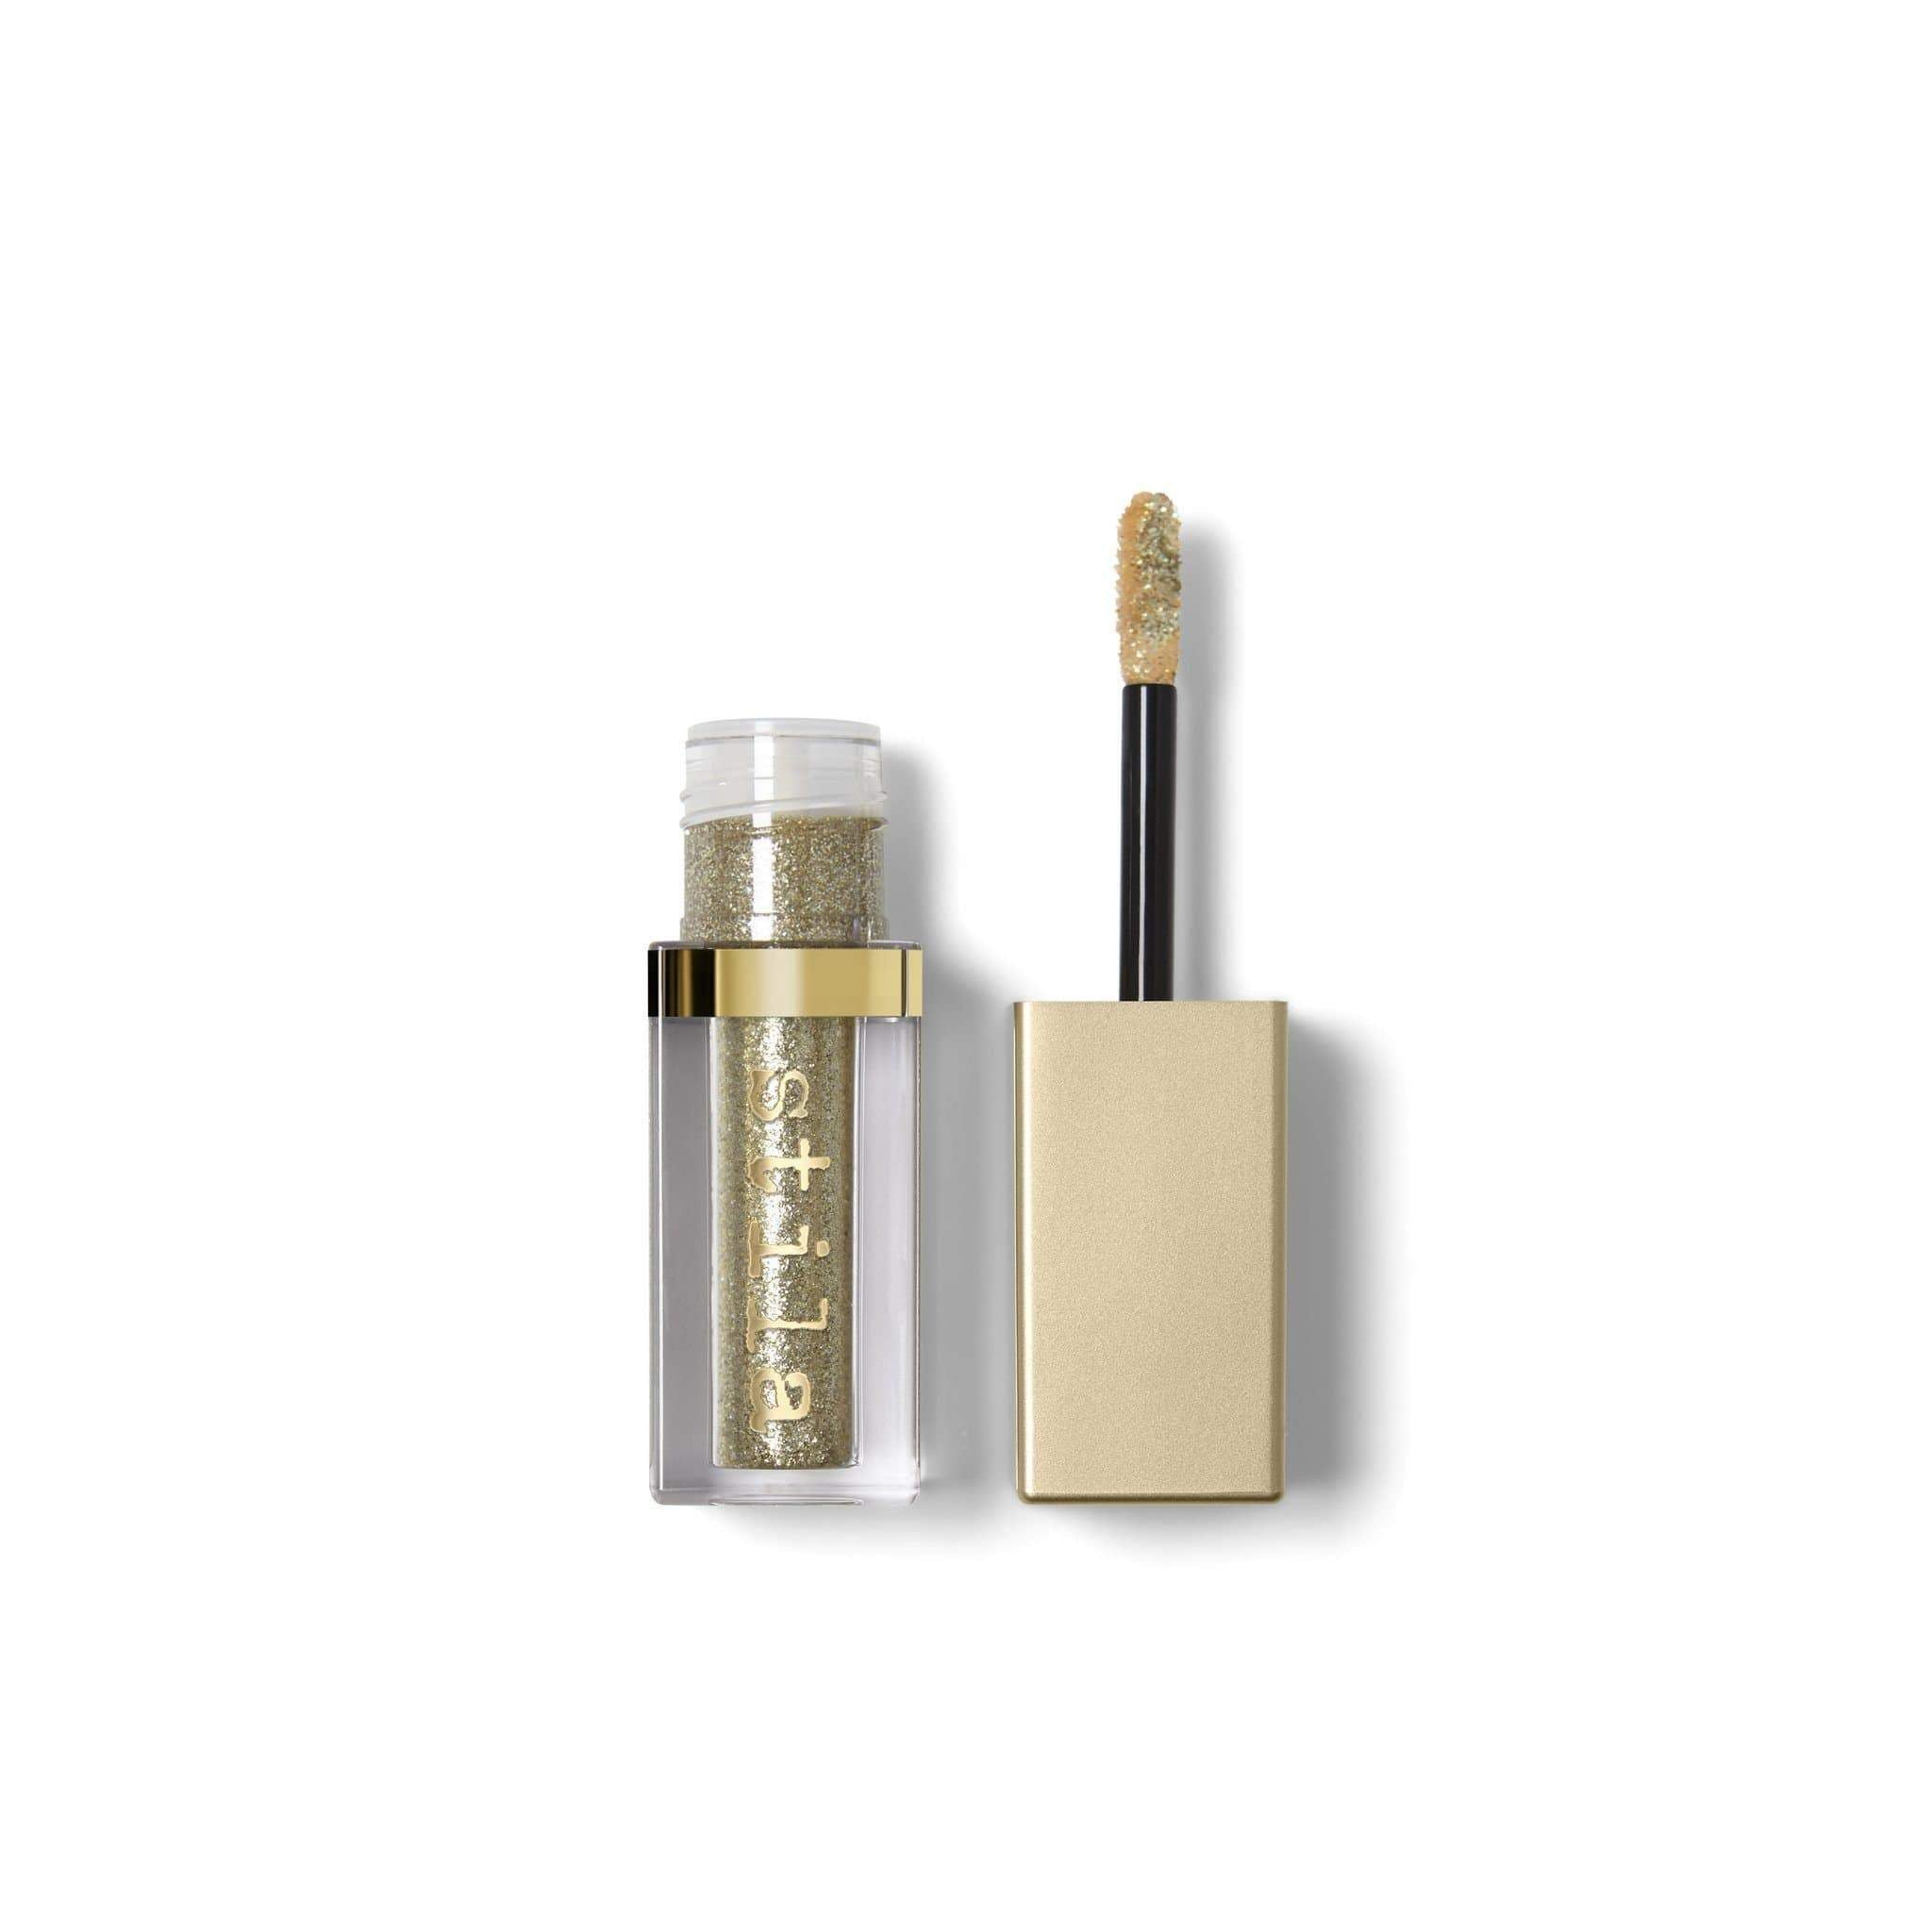 stila Magnificent Metals Glitter & Glow Liquid Eye Shadow- Gold Goddess, Eyeshadow, London Loves Beauty